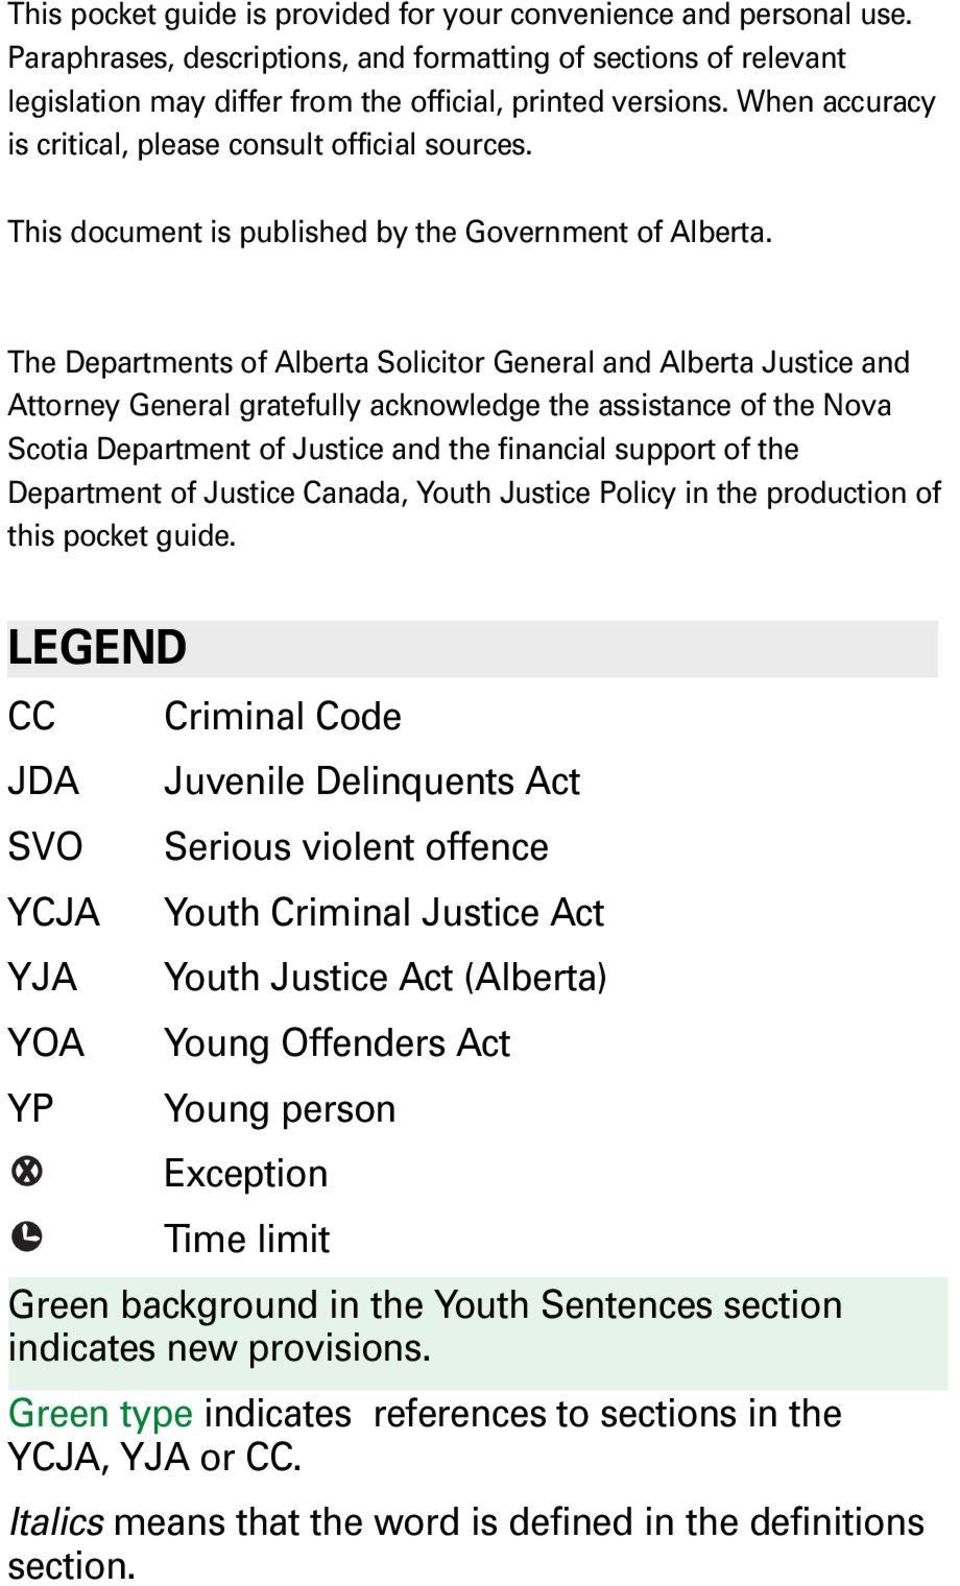 The Departments of Alberta Solicitor General and Alberta Justice and Attorney General gratefully acknowledge the assistance of the Nova Scotia Department of Justice and the financial support of the